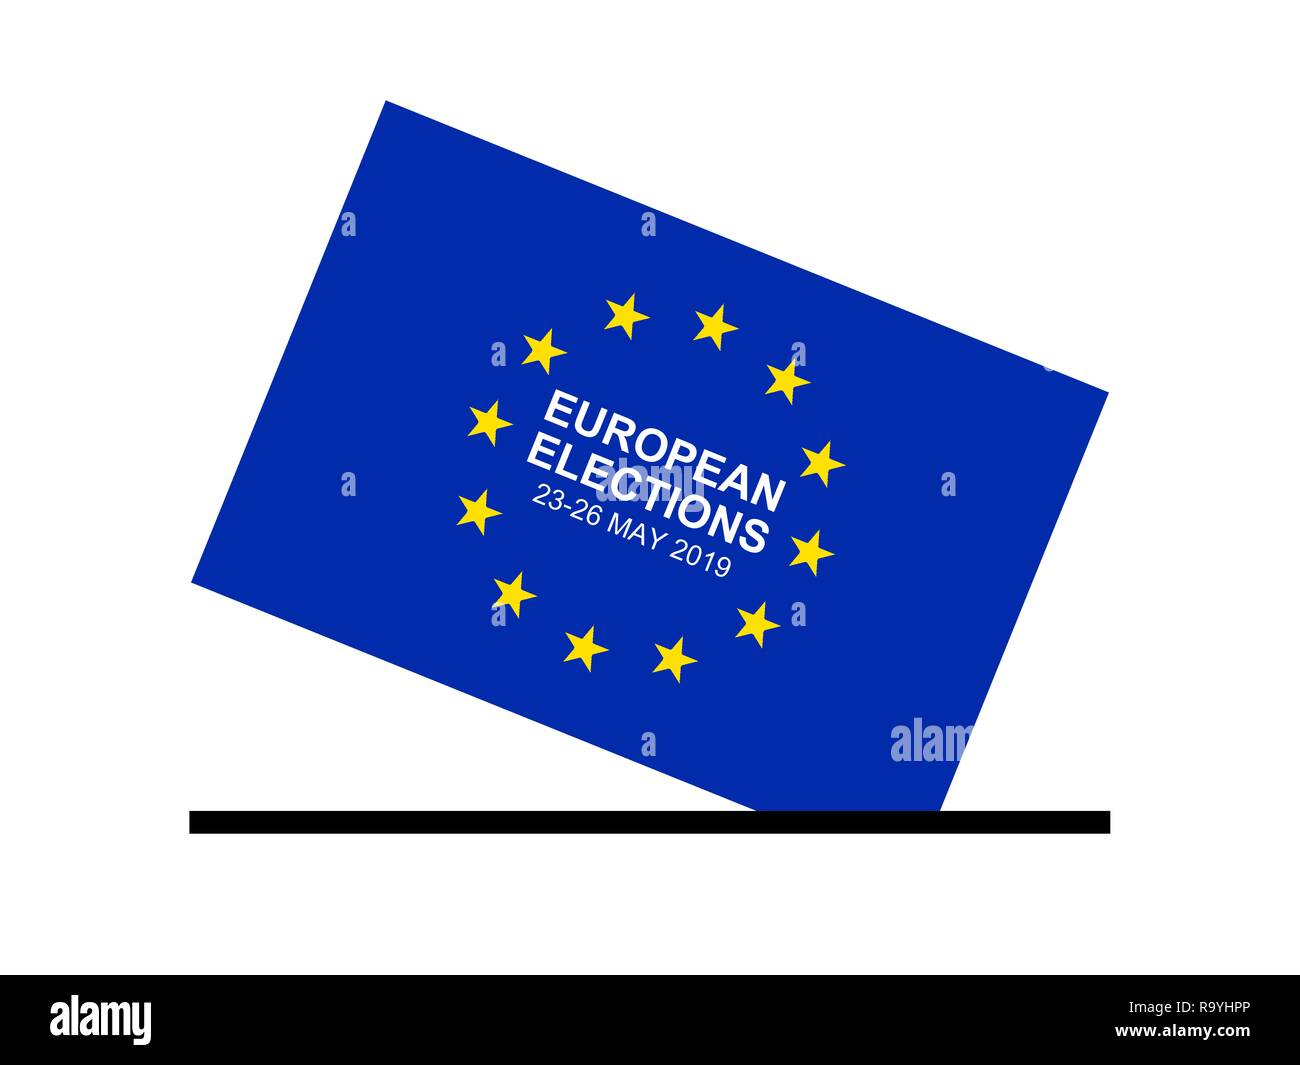 European Parliament Elections 23-26 May 2019 - Illustration Pattern - Stock Image